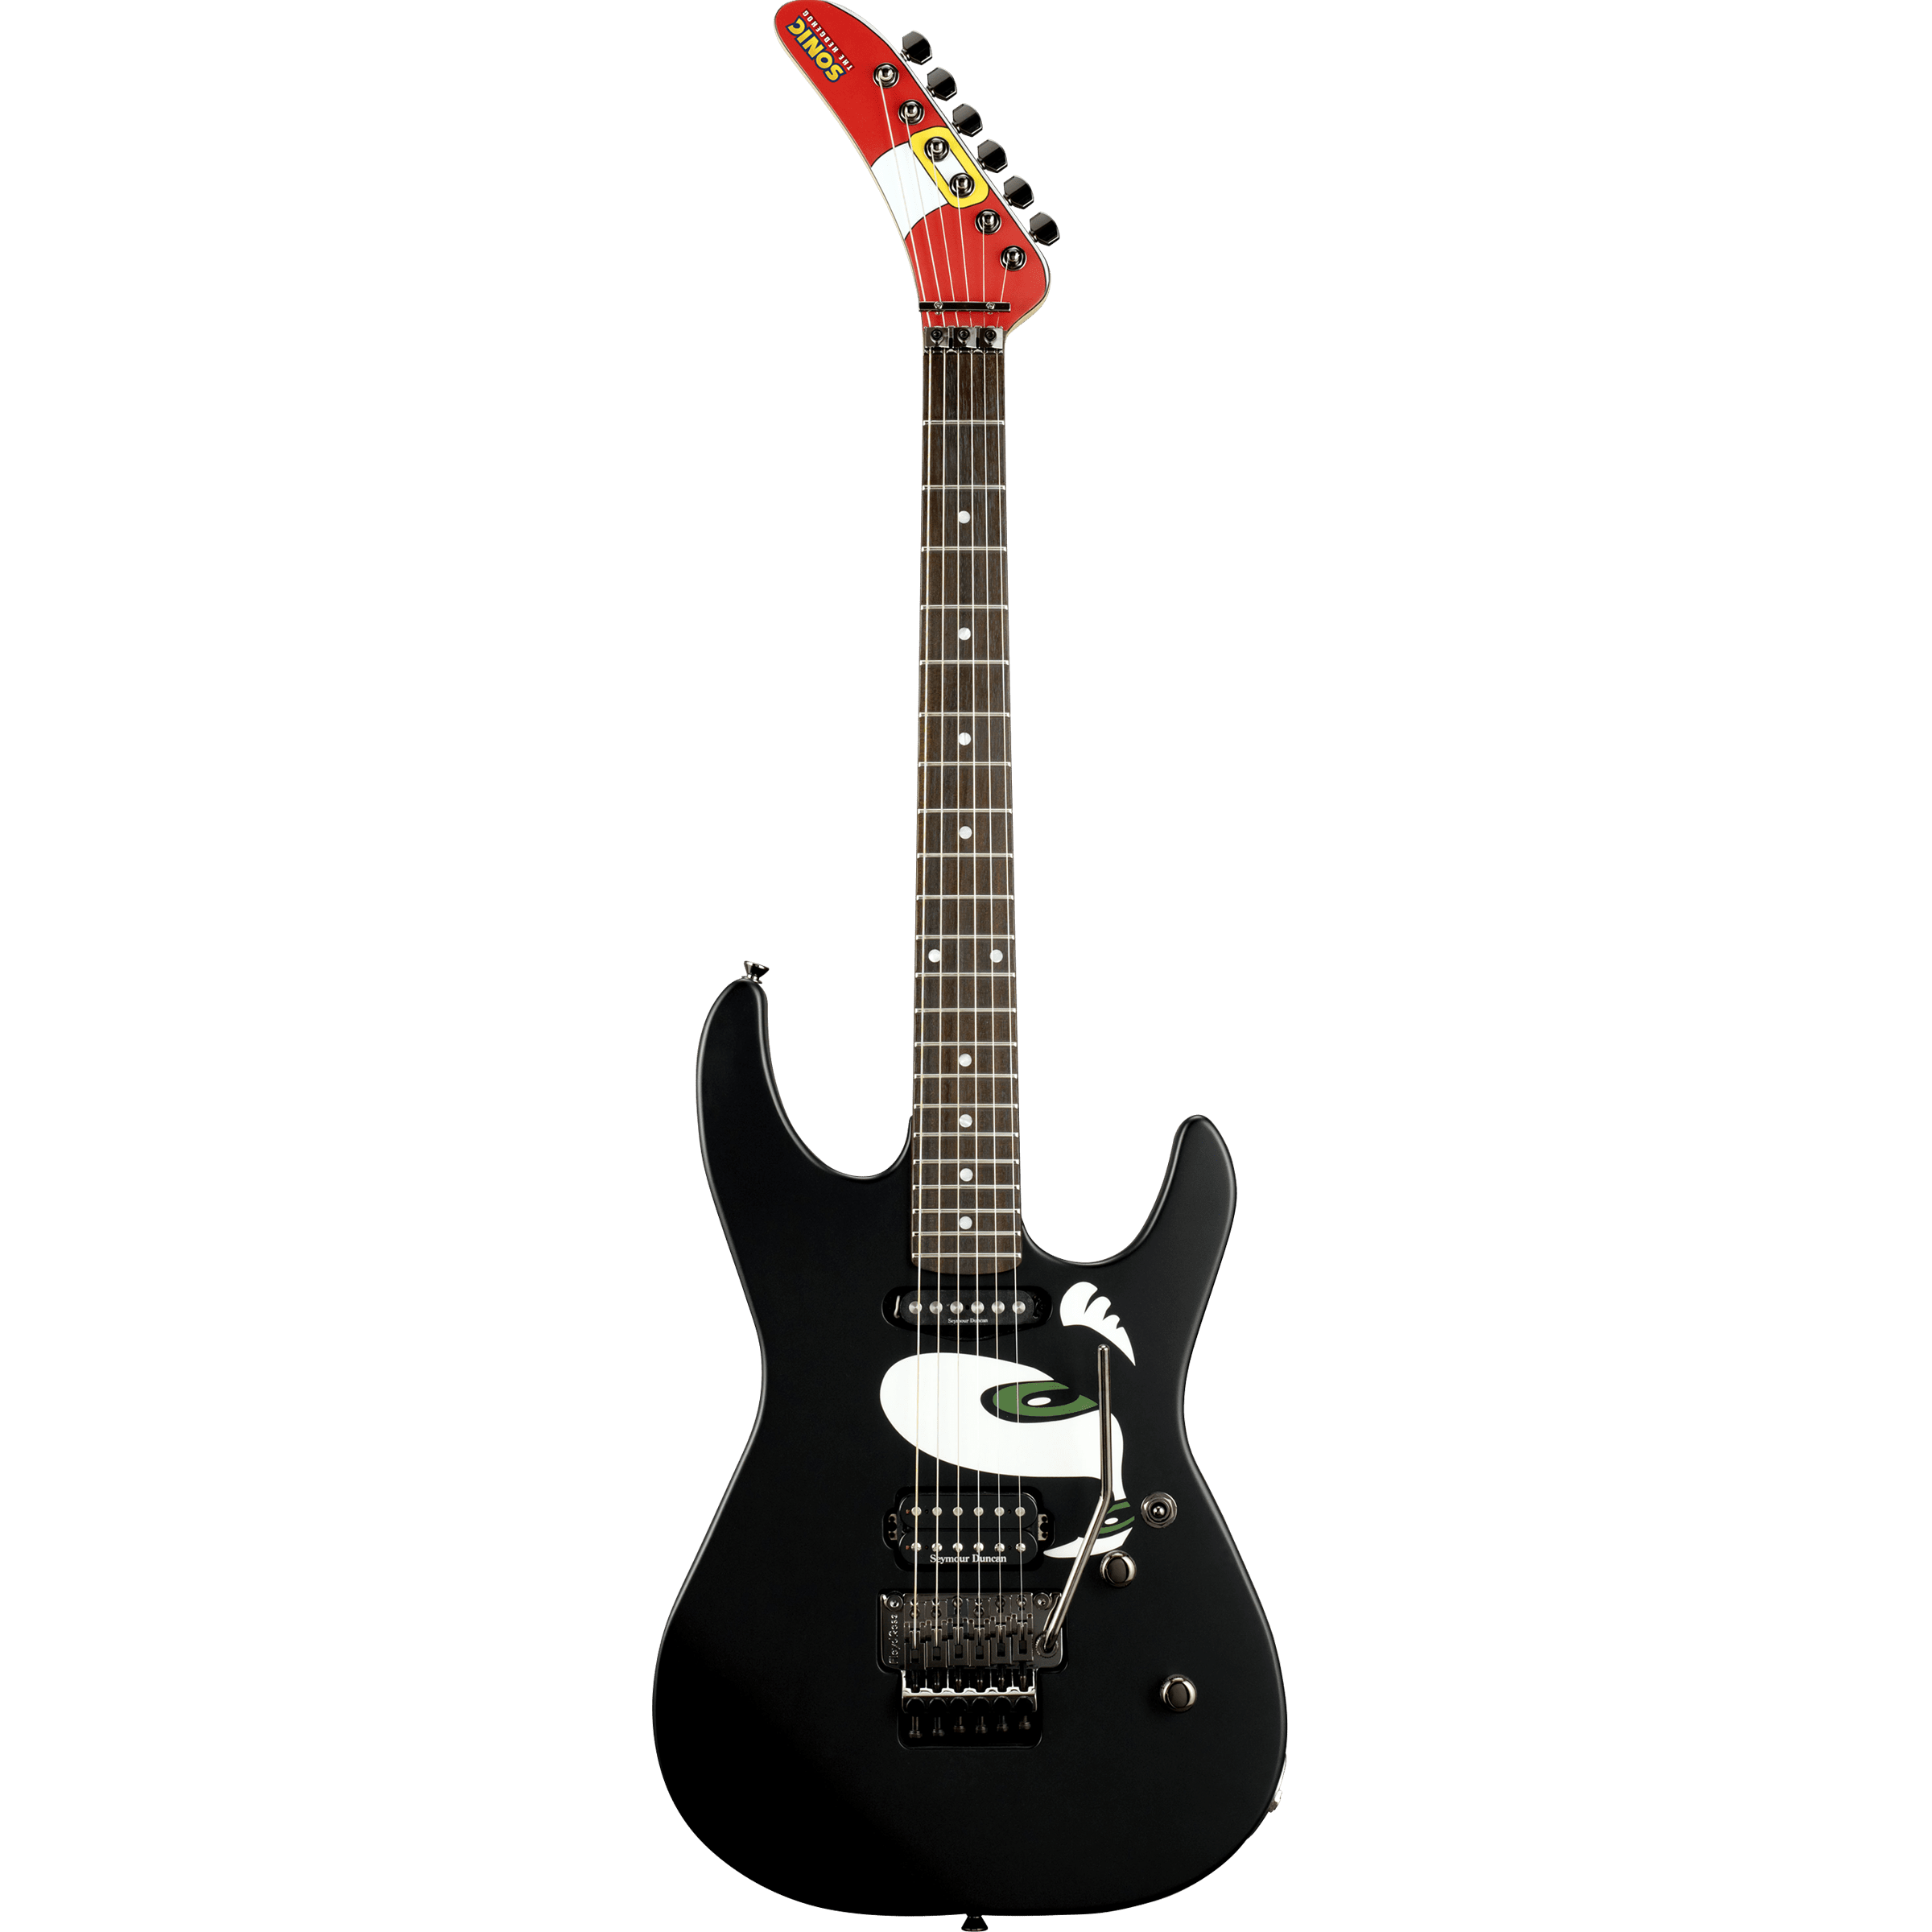 STH-130 SONIC THE HEDGEHOG GUITAR